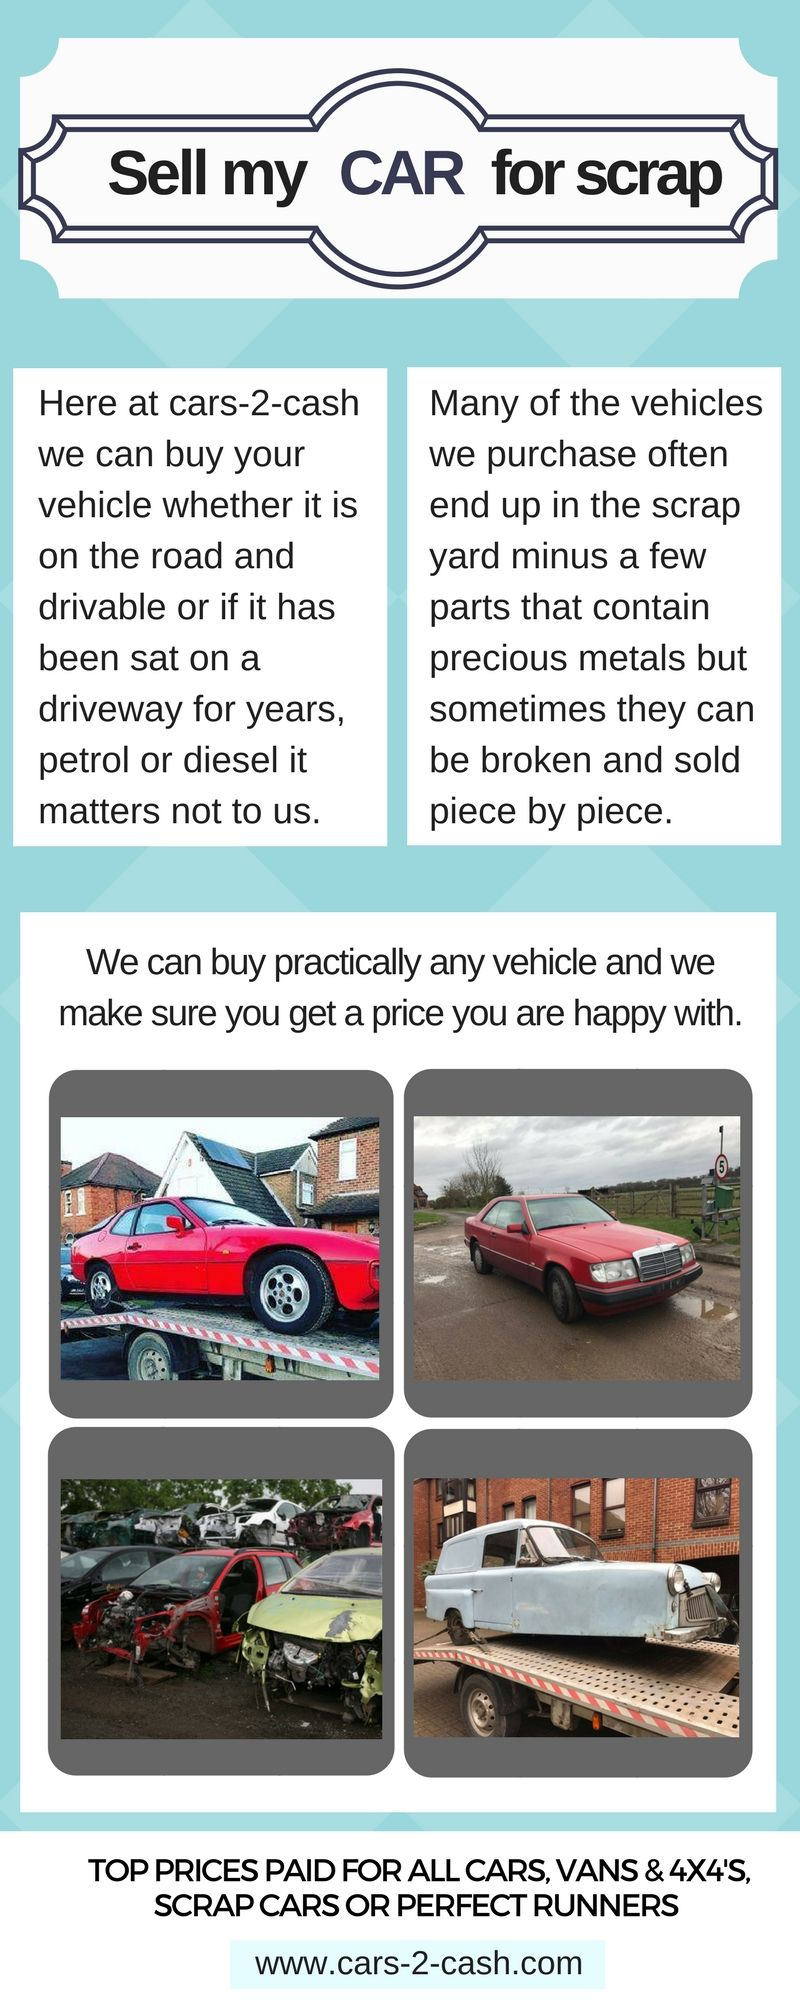 Here at cars-2-cash we can buy practically any vehicle and we make ...